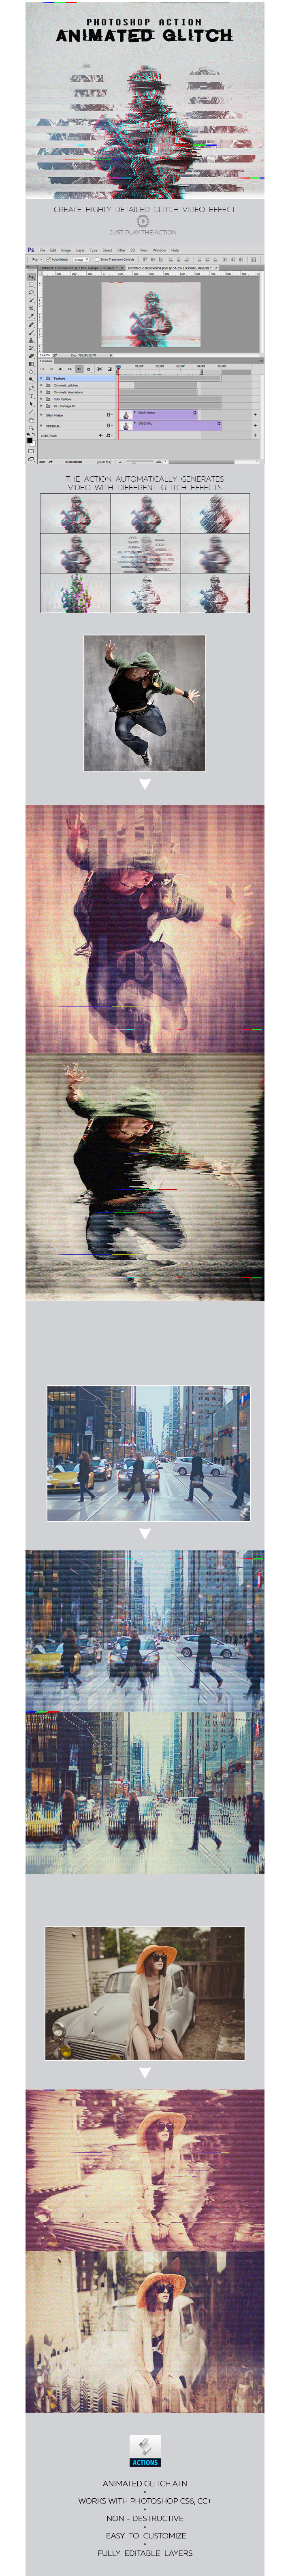 graphicriver_glitch_photoshop_actions_12811041